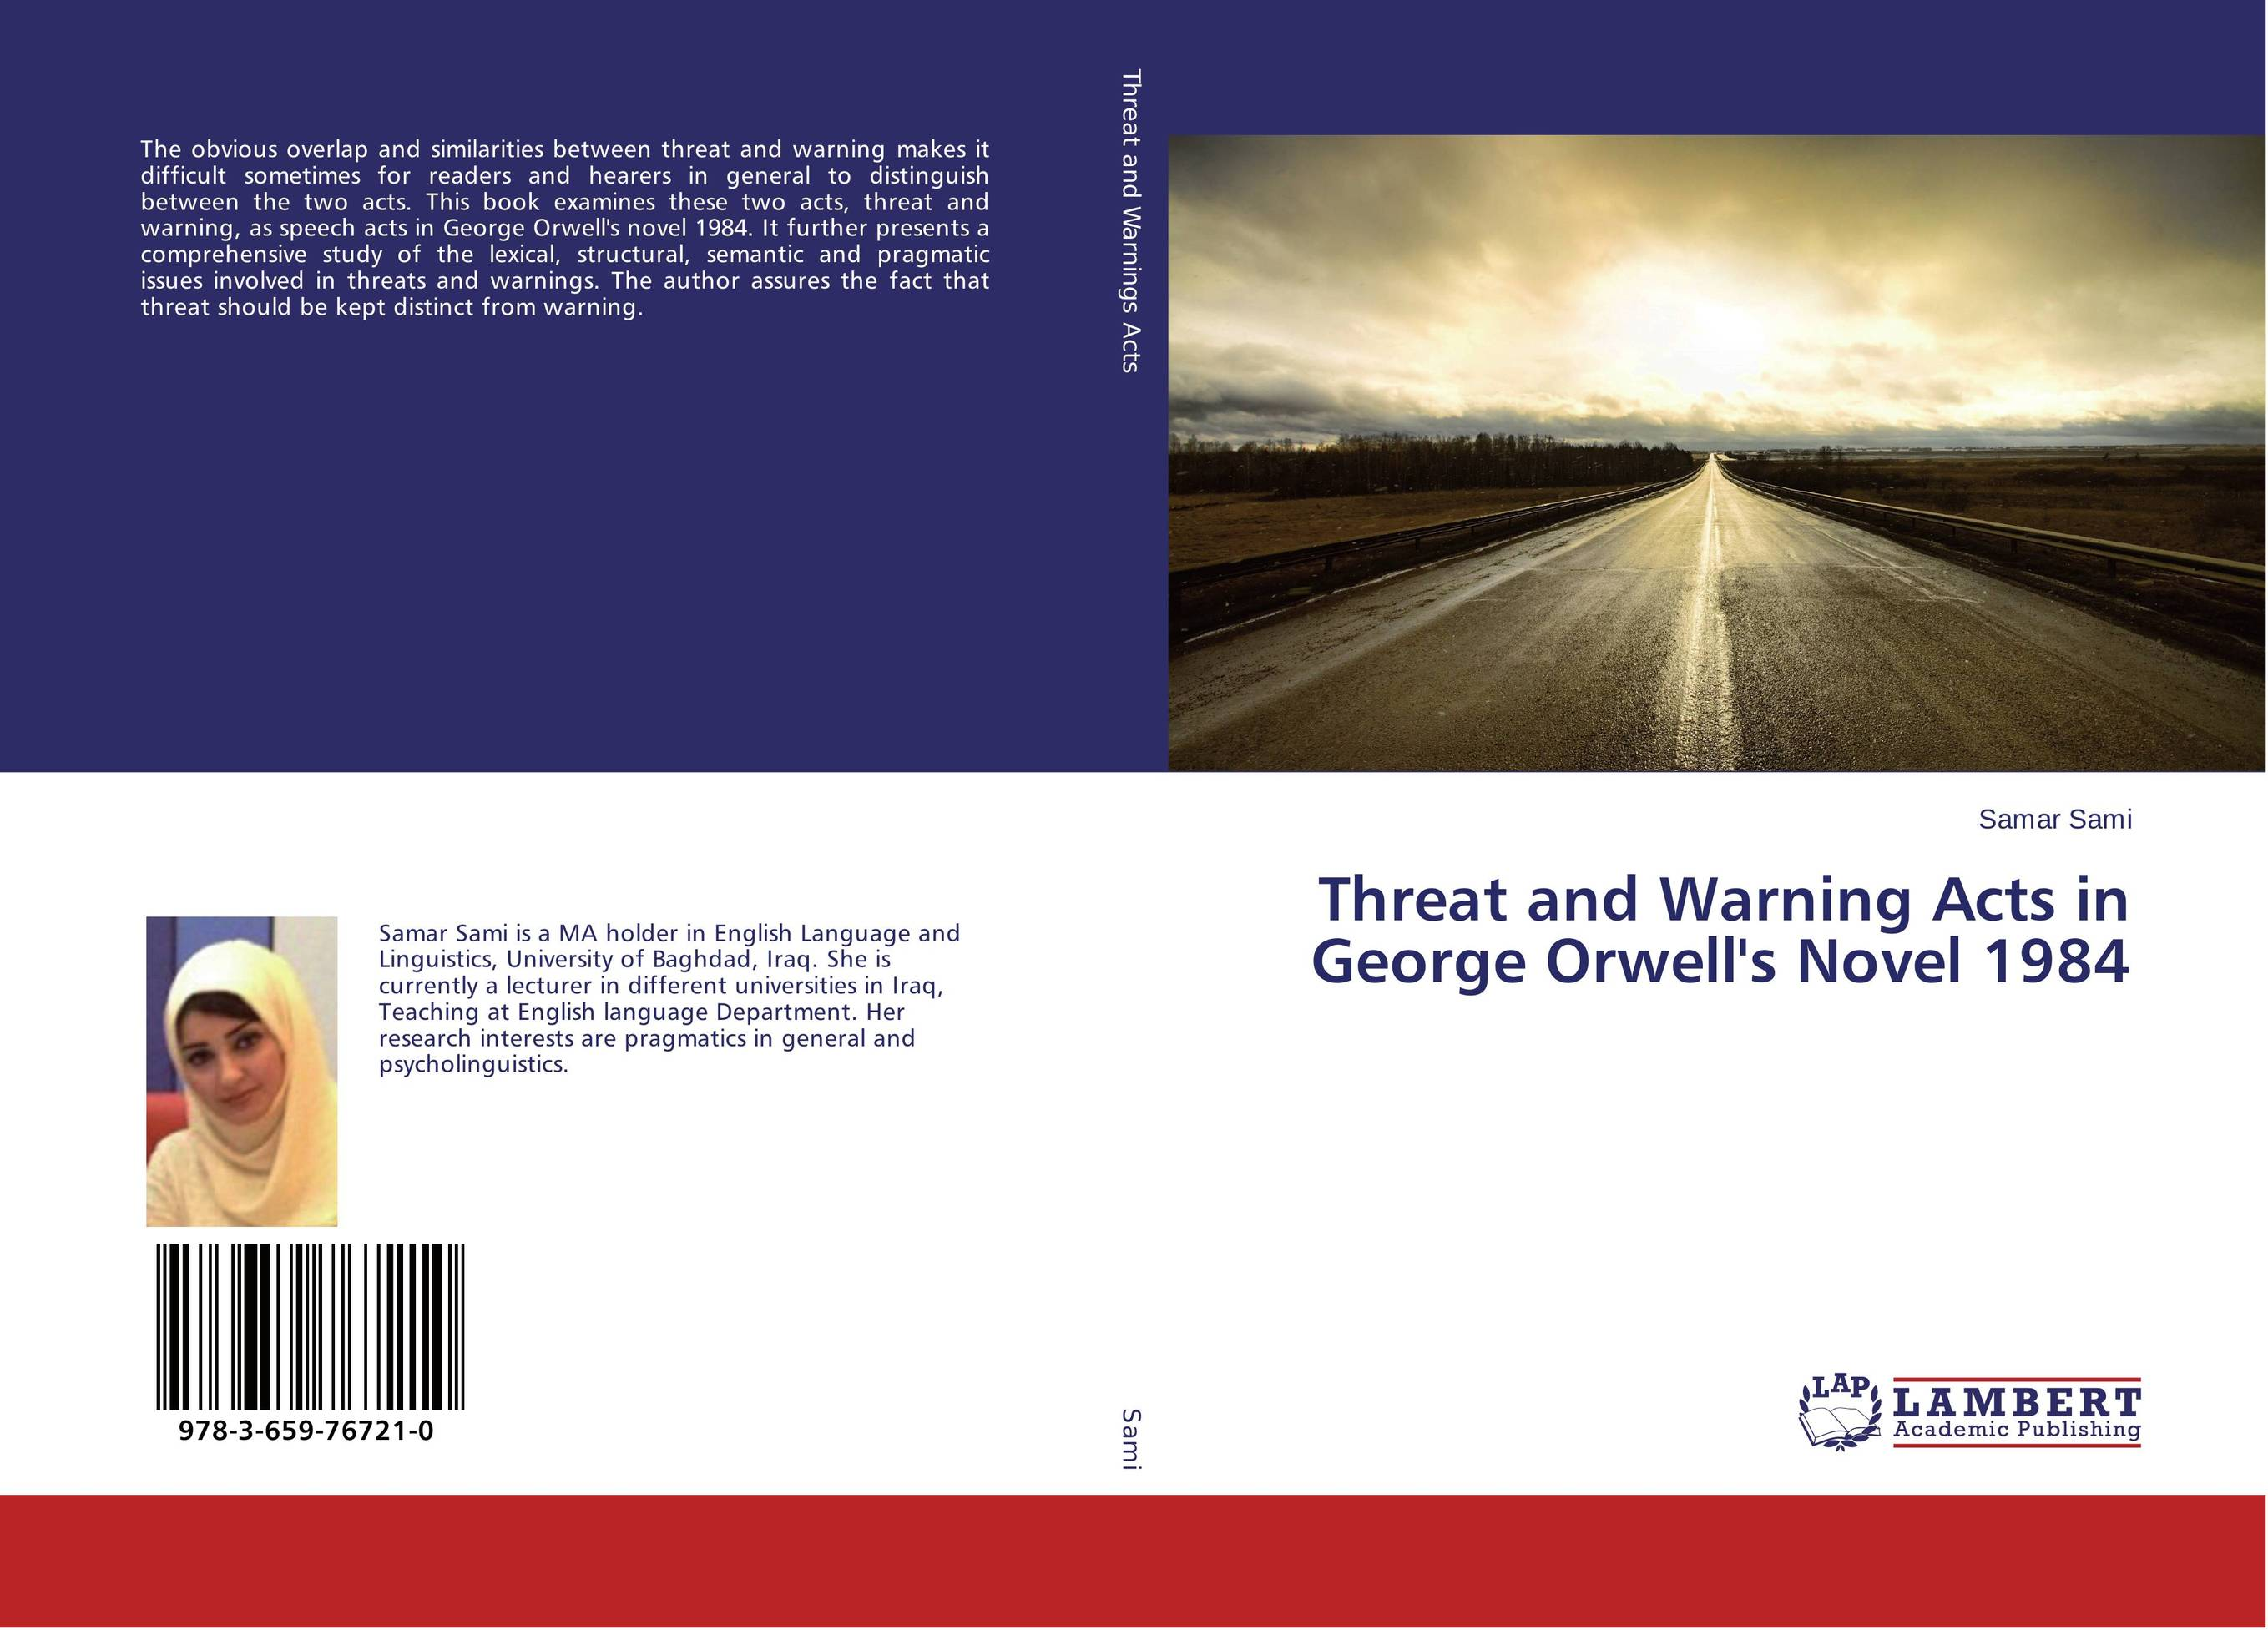 Threat and Warning Acts in George Orwell's Novel 1984 kubo and the two strings the junior novel